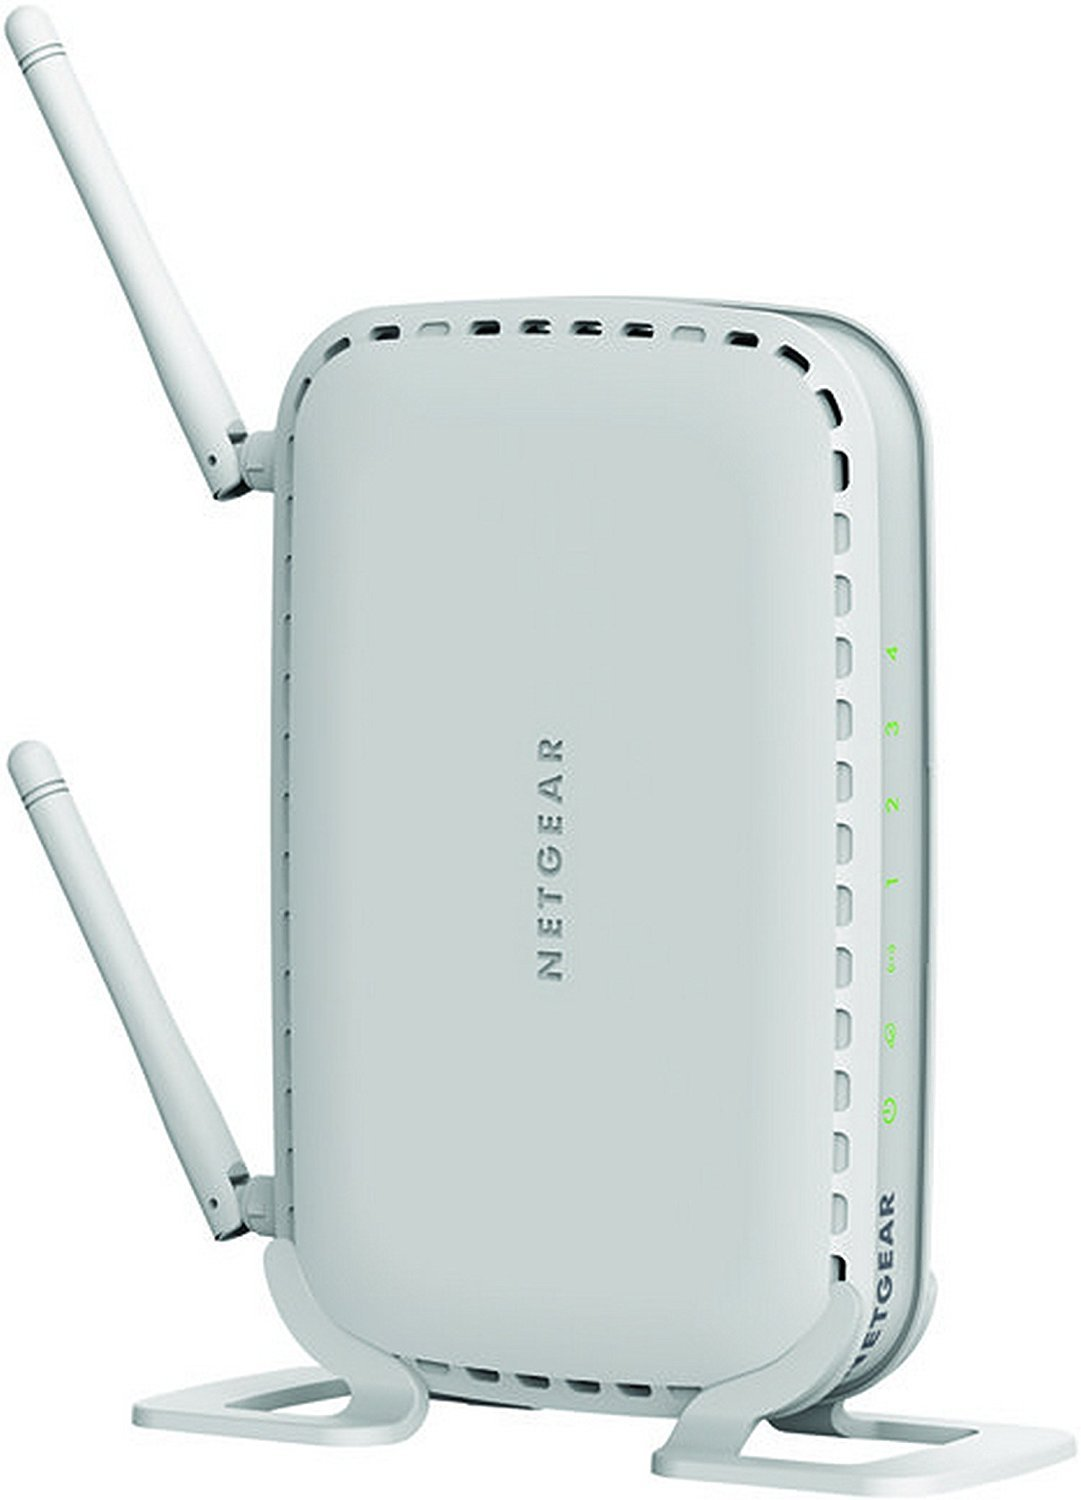 Best WiFi Routers List for Better Internet Speed in 2021 2